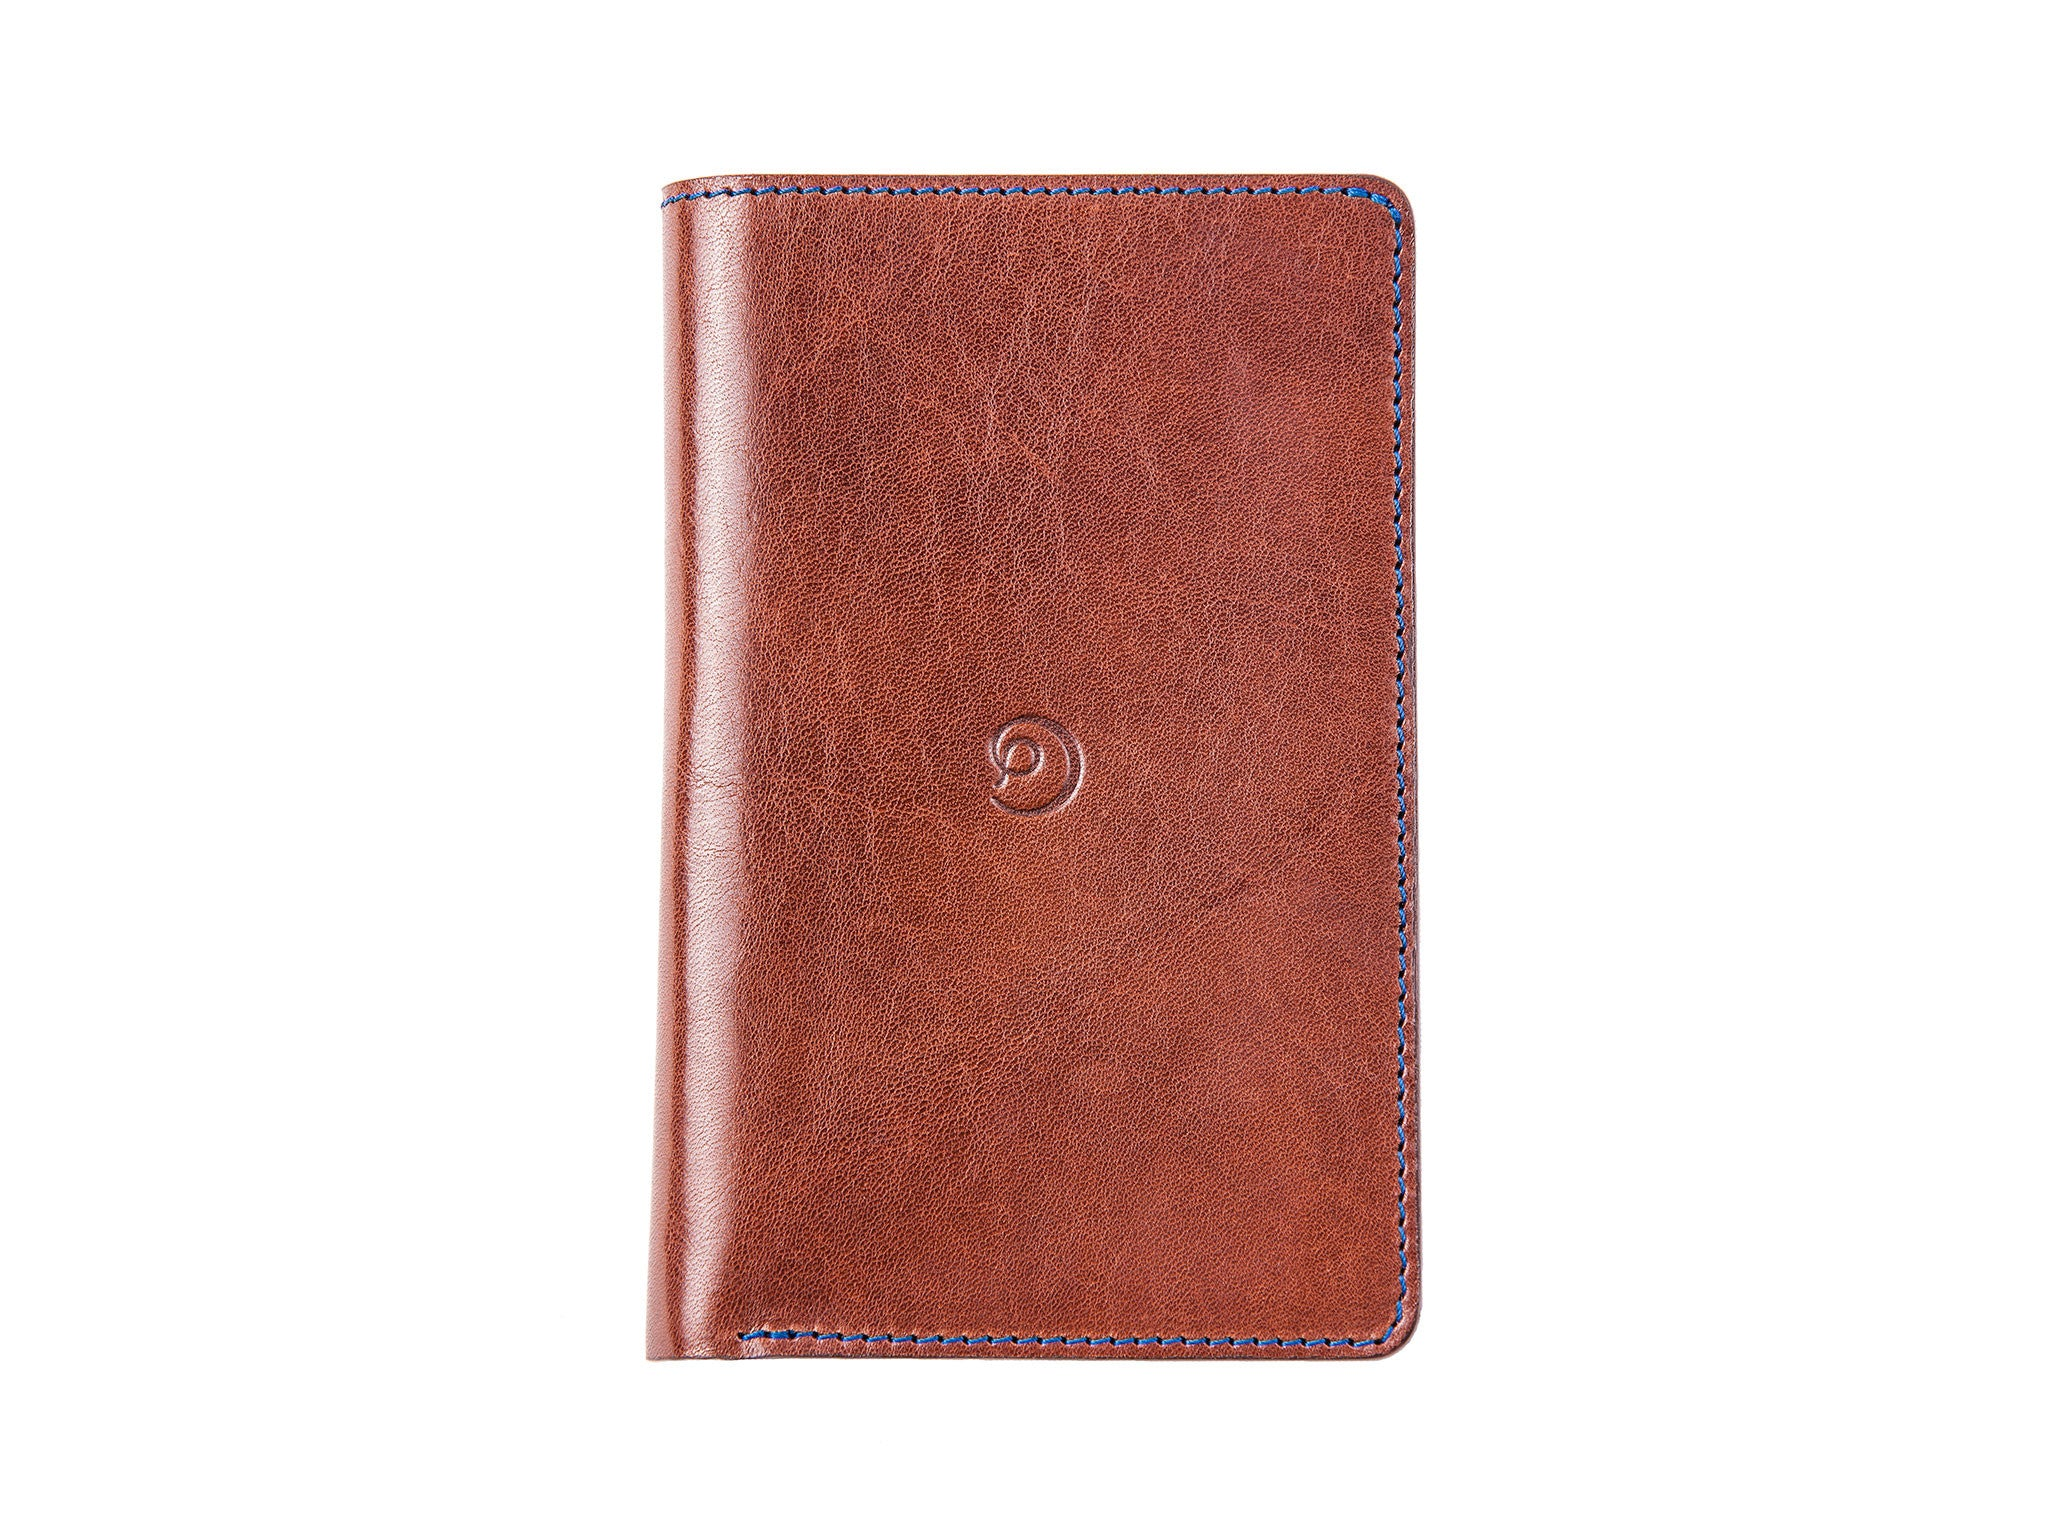 Iphone S Leather Wallet Case